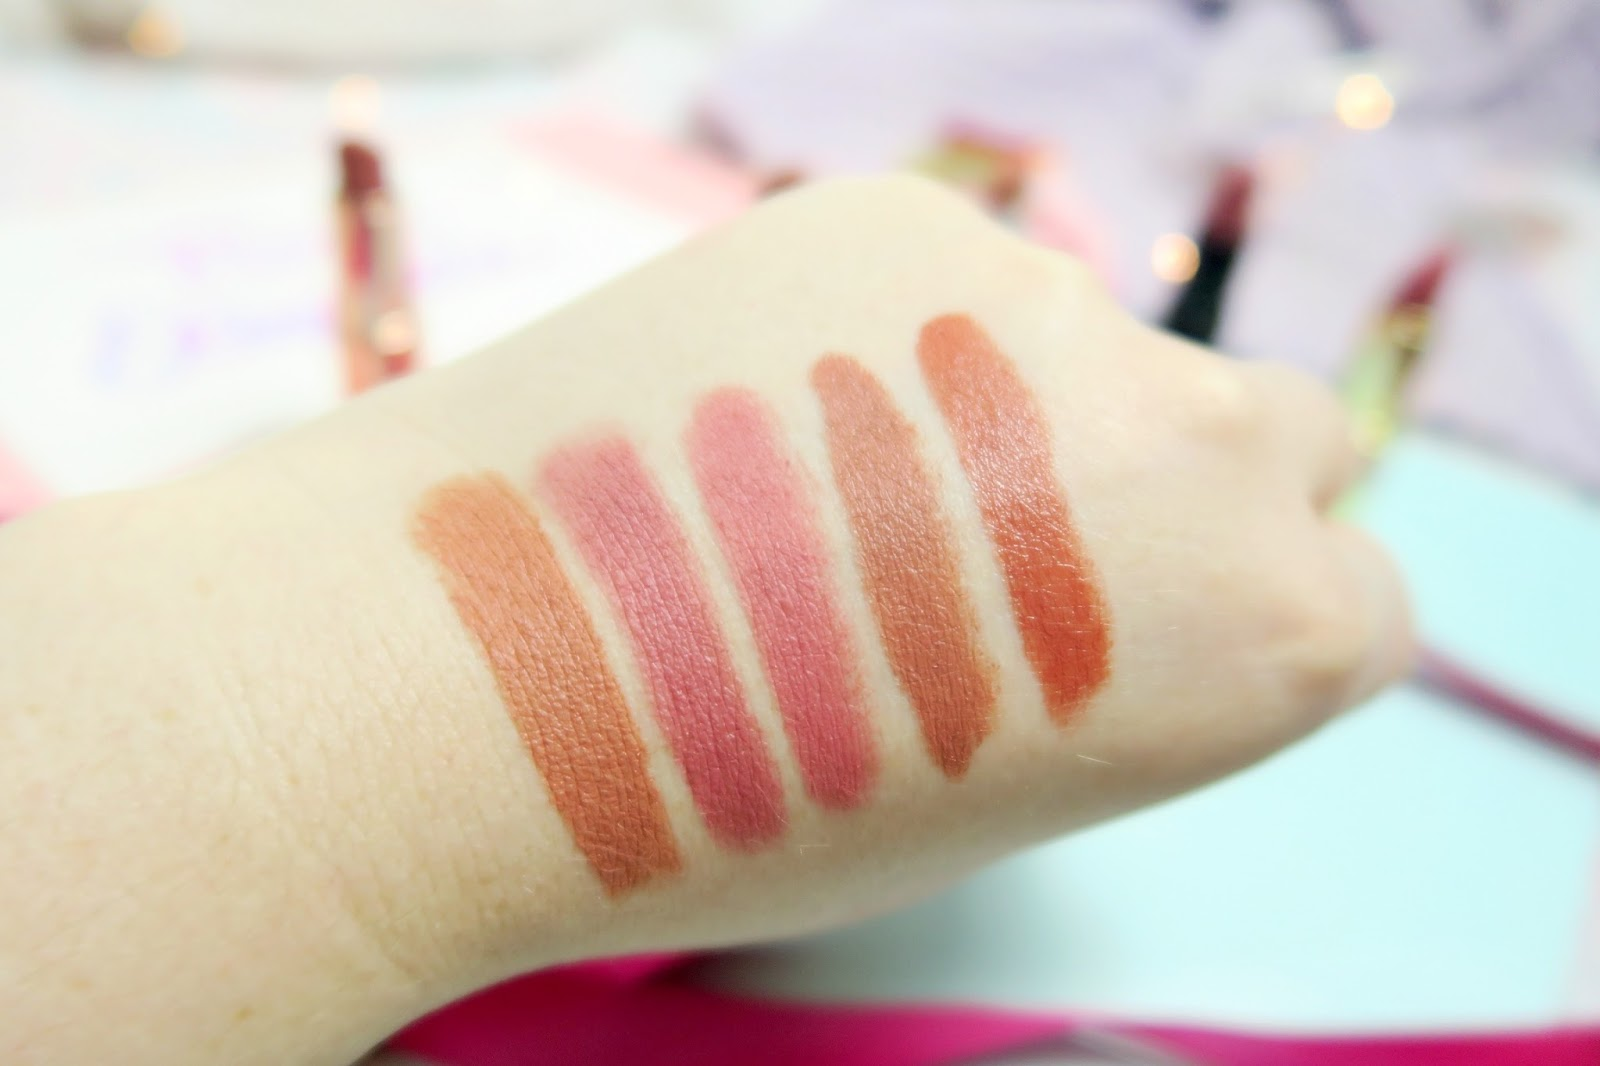 Trendsetter, Matt Rose, Vintage Rose, Velvet Teddy and Stoned Rose swatches